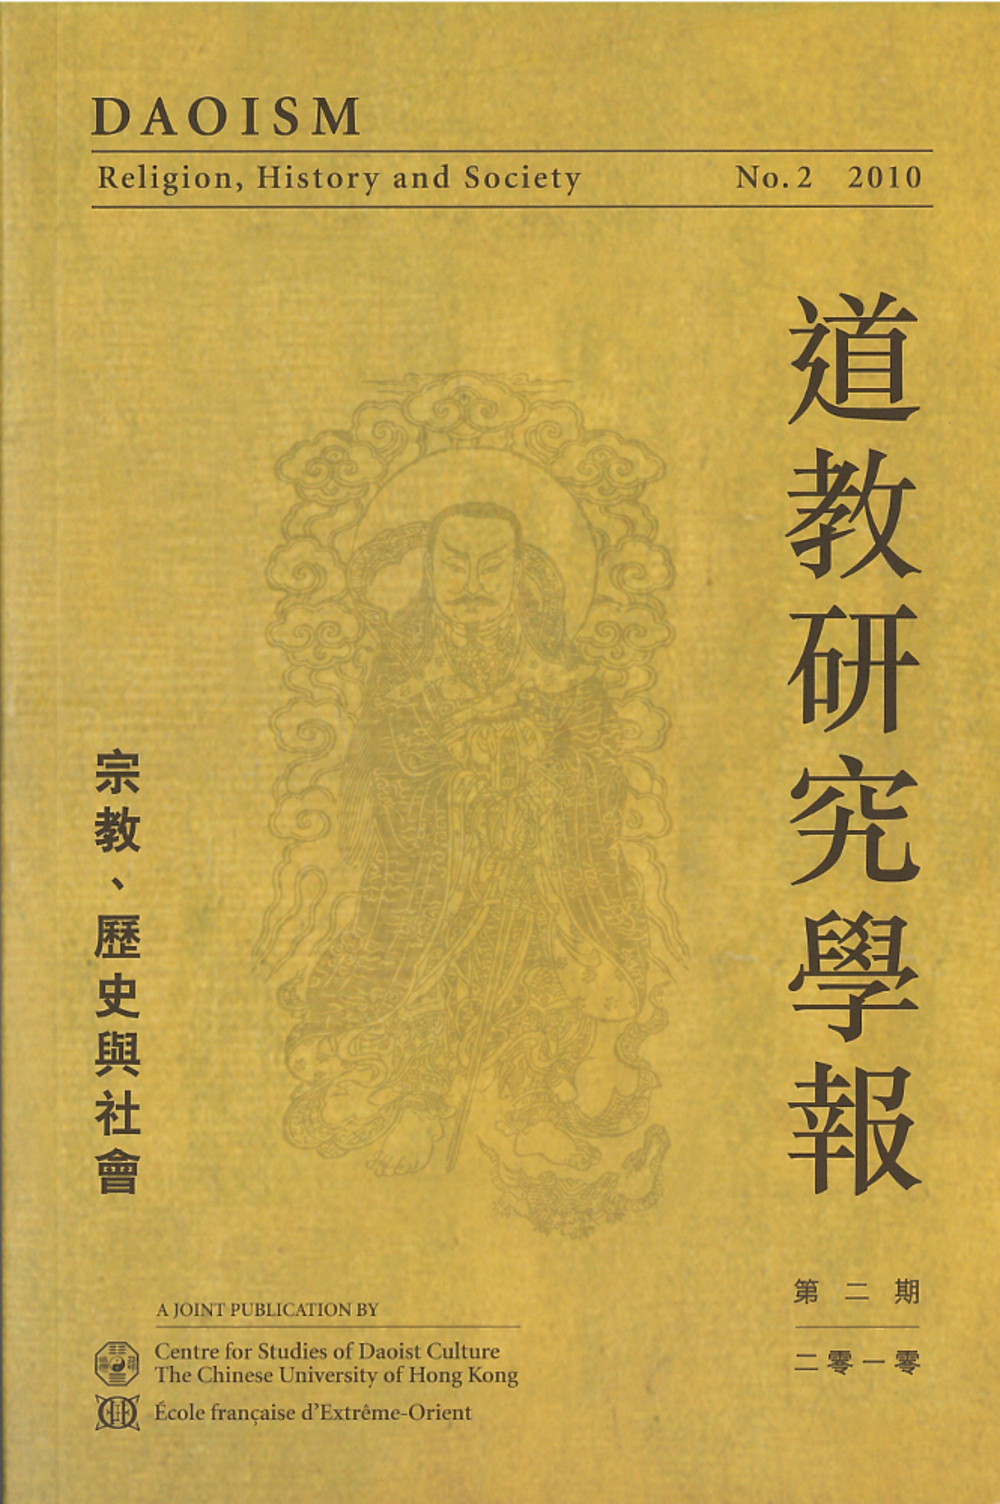 Daoism: Religion, History and Society 2 (2010)